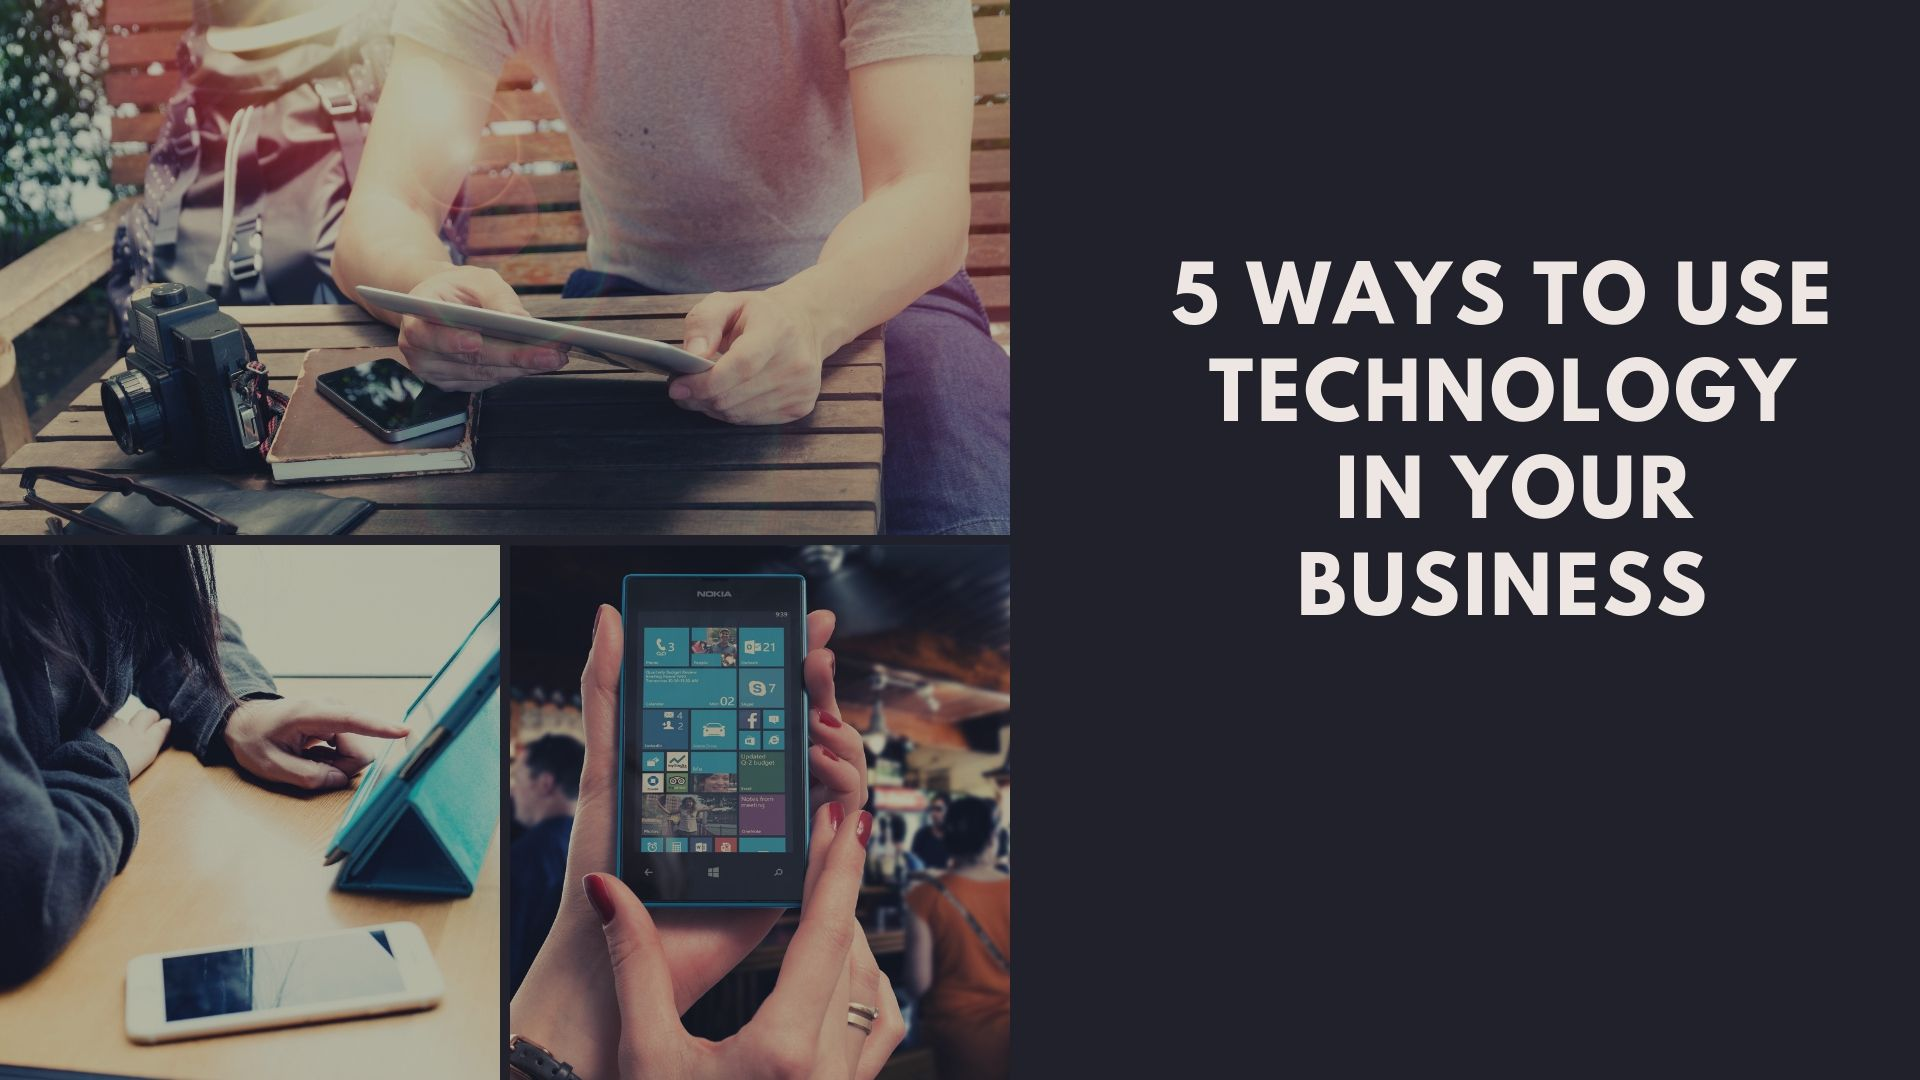 5 Ways To Use Technology In Your Business